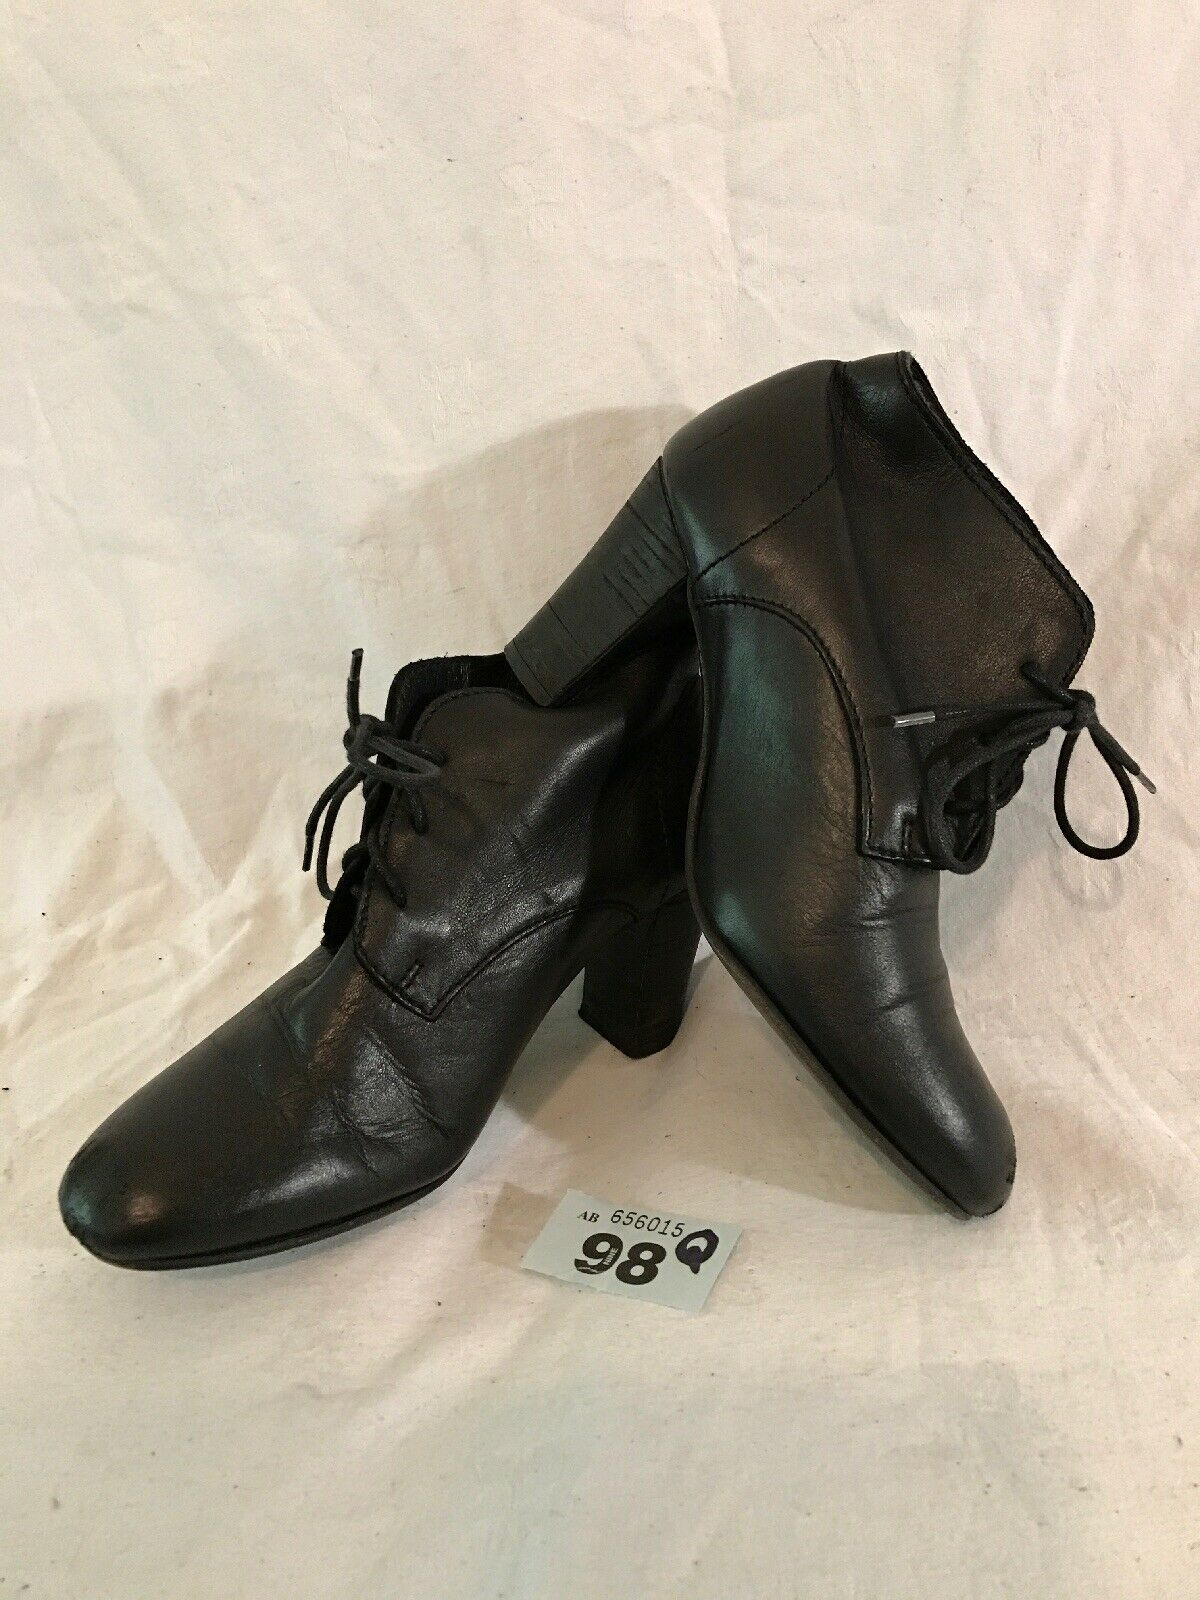 Minelli Black Ankle Leather Lovely Boots Size 36 (98Q)